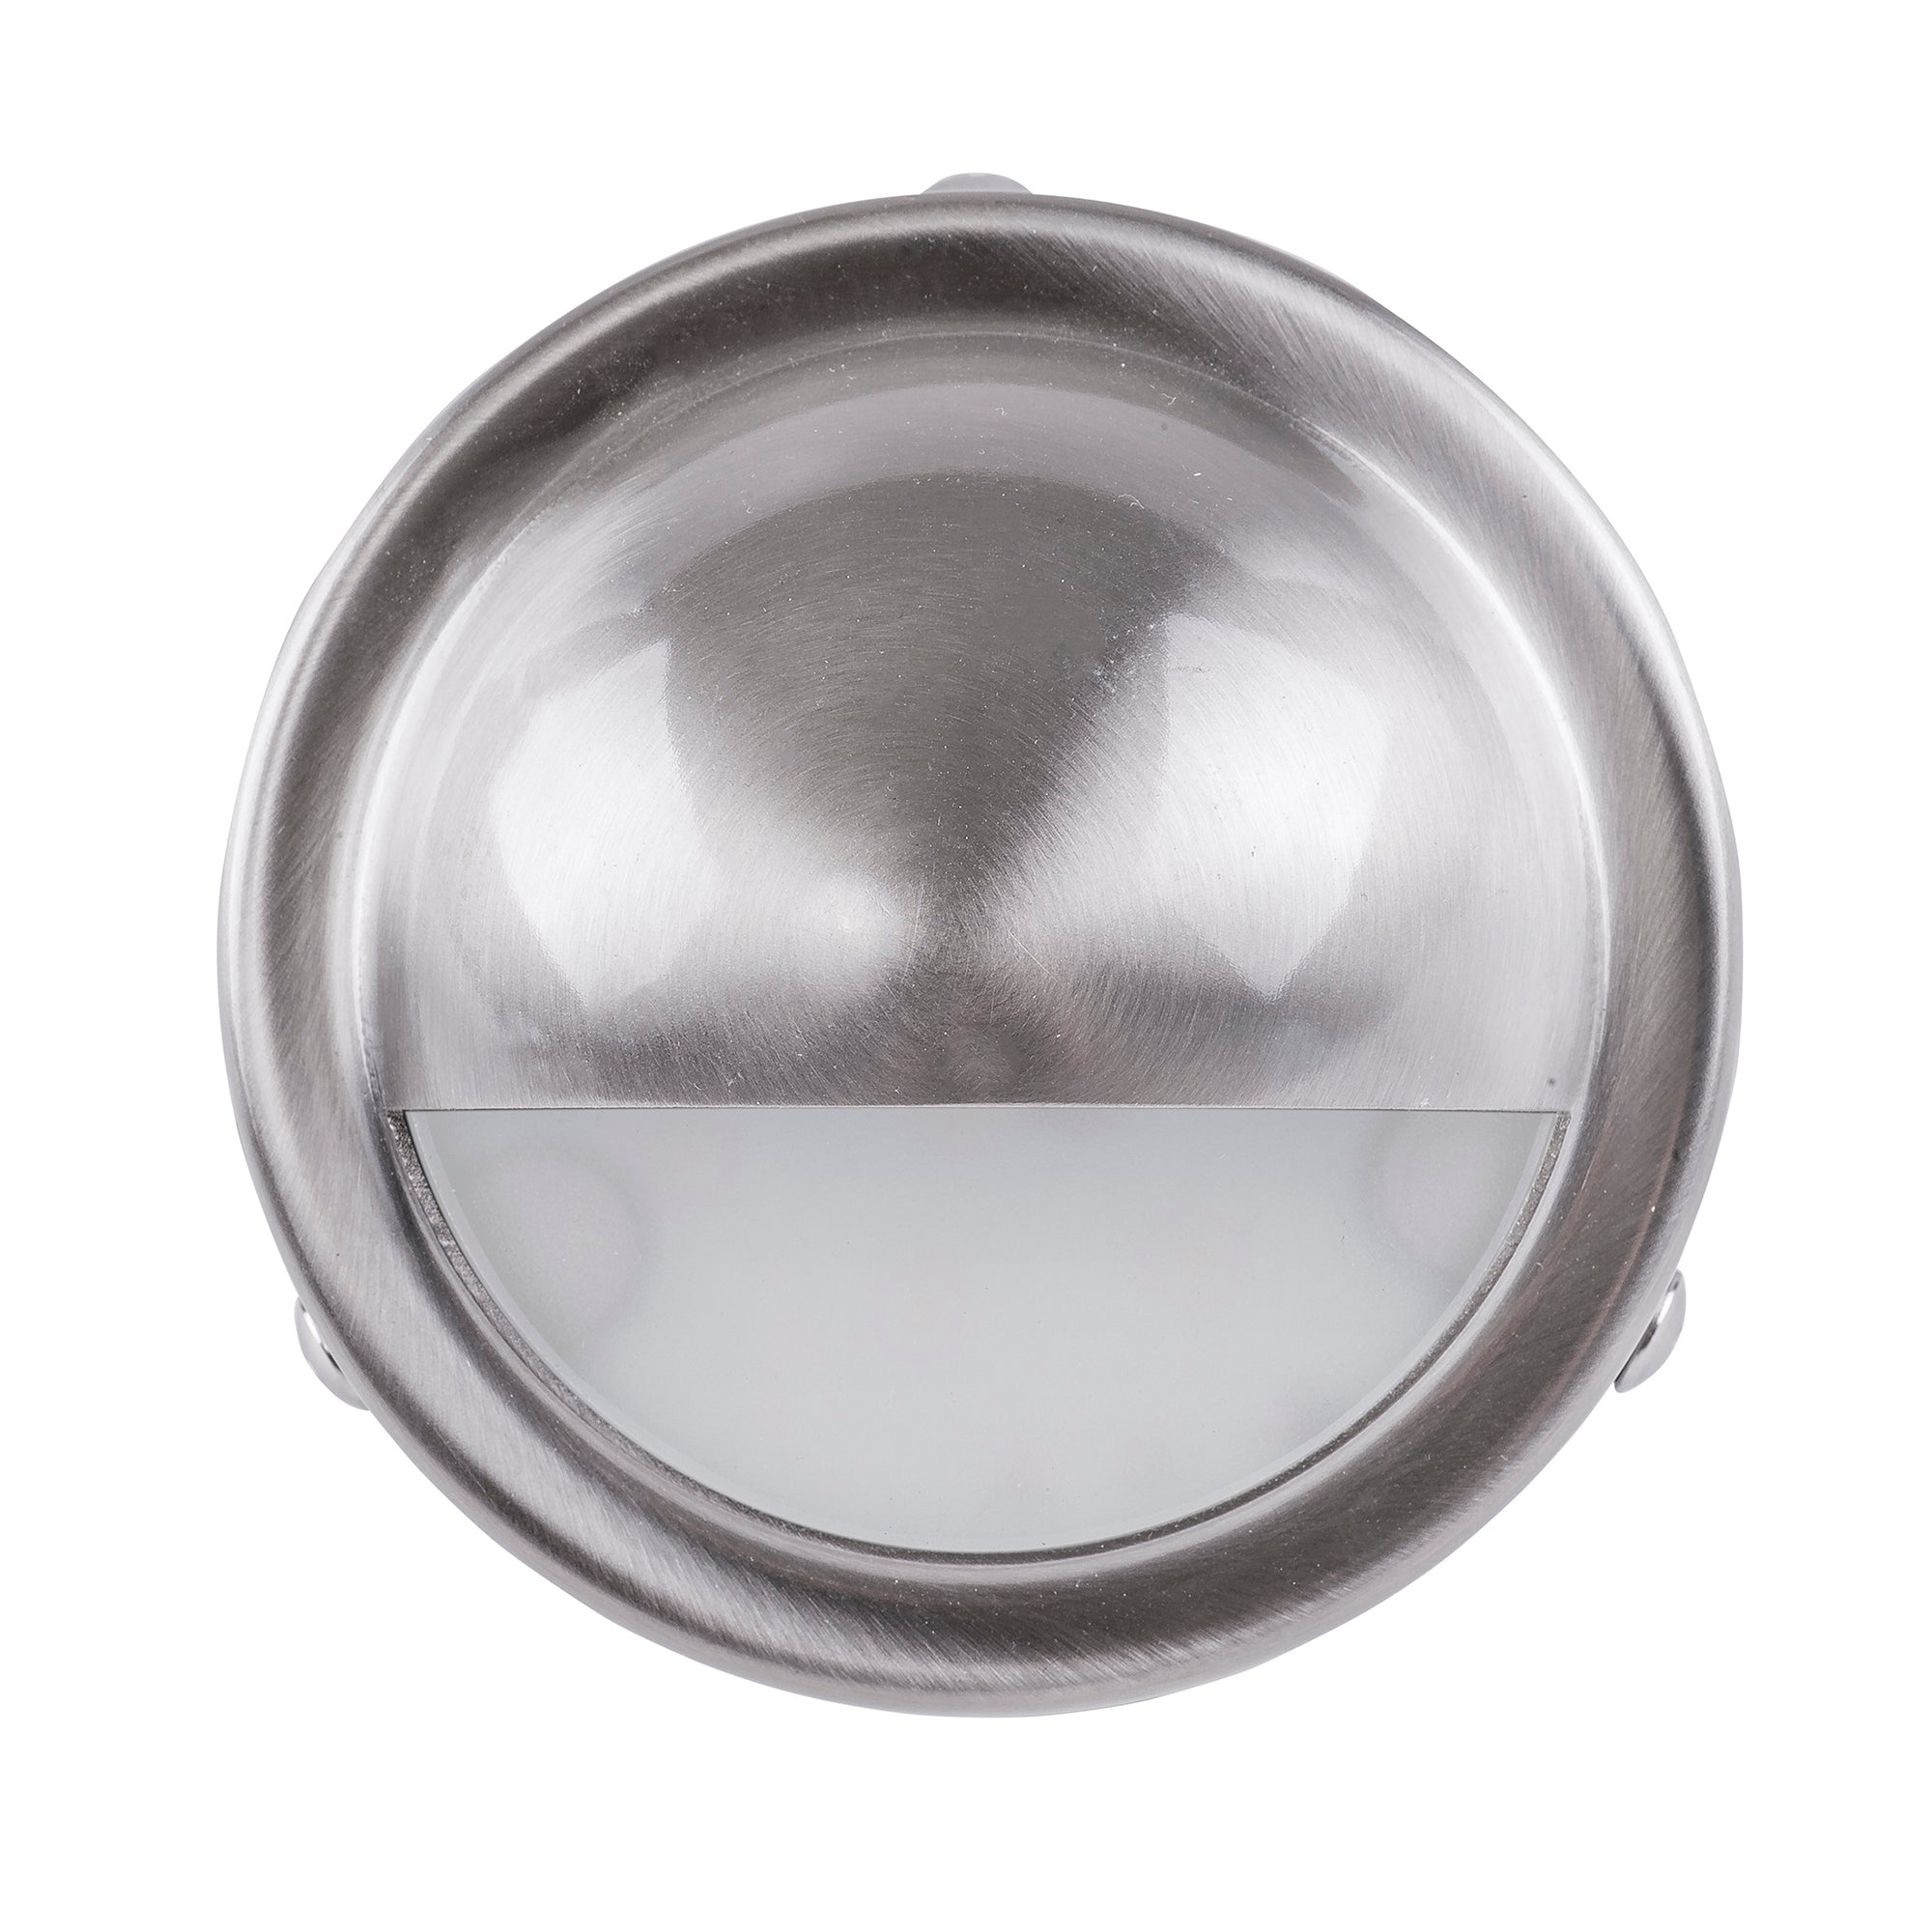 HV2906-HV2909 - Pinta 316 Stainless Steel Step Lights with Large Eyelid